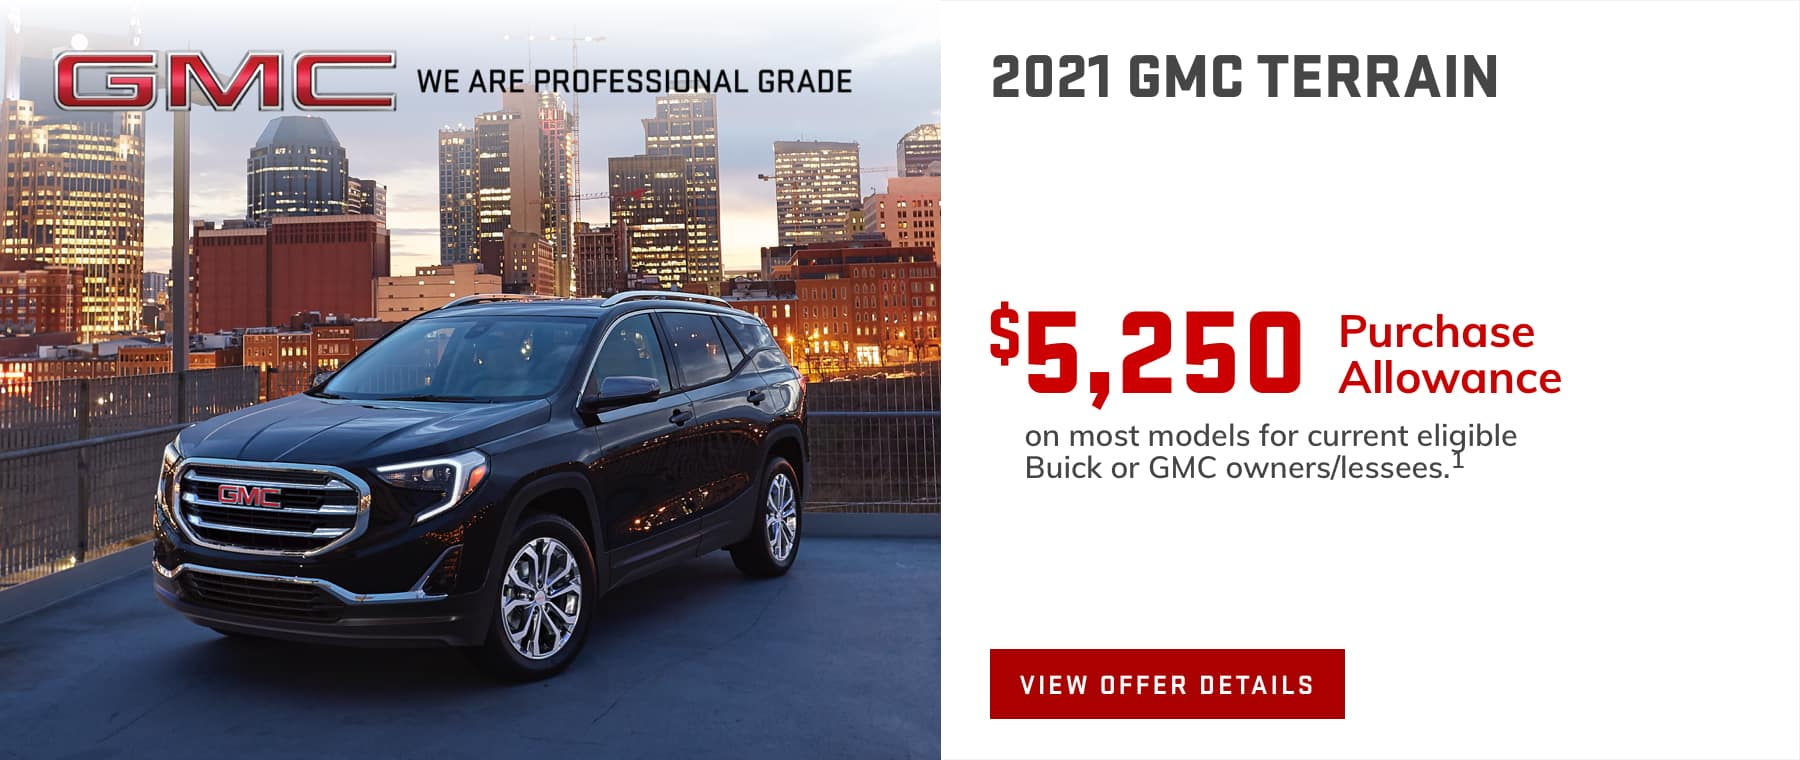 $5,250 Purchase Allowance on most models for current eligible Buick or GMC owners/lessees.1